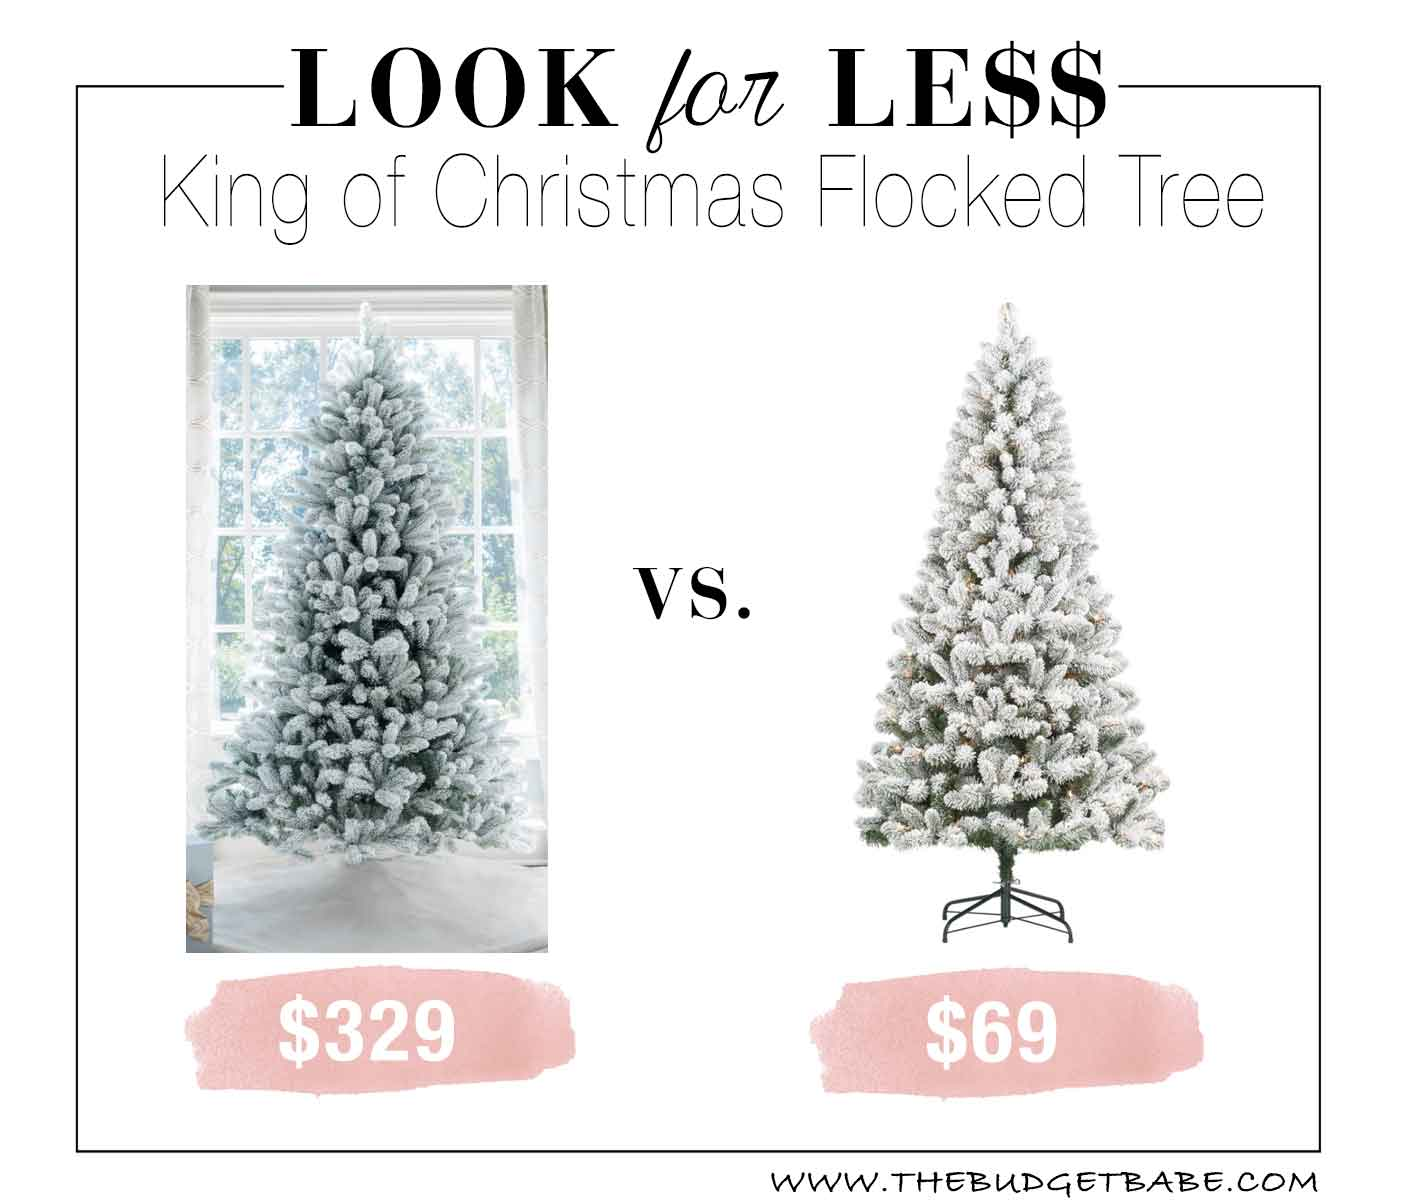 Flocked trees for Christmas, splurge or save